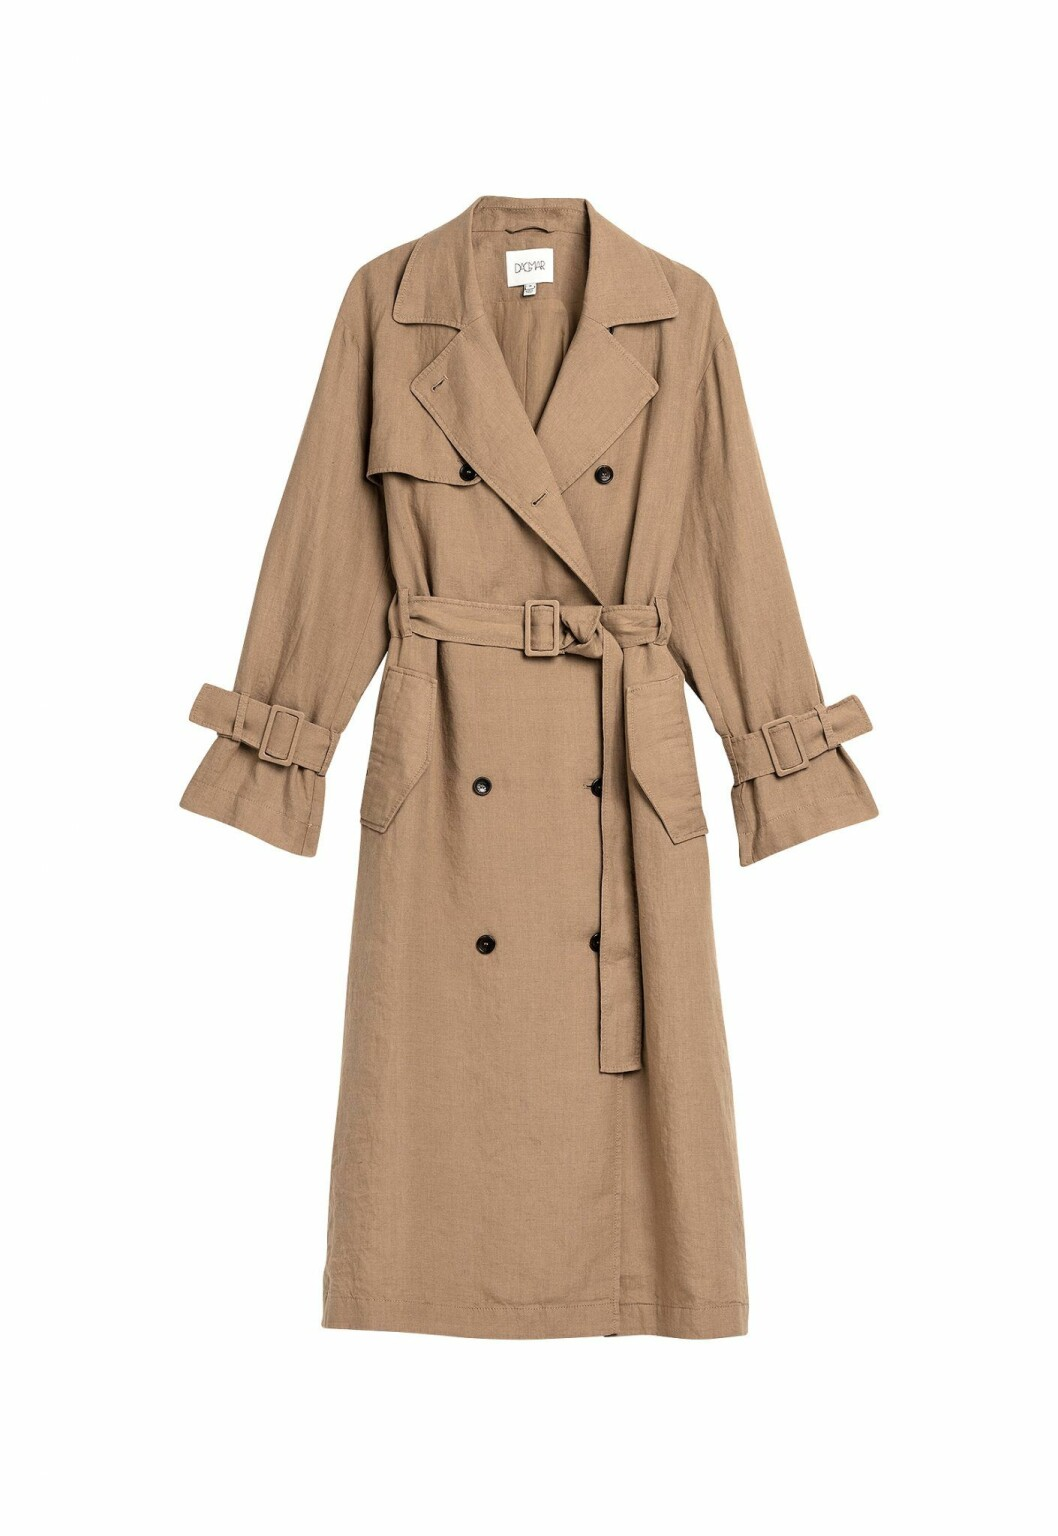 House of Dagmar Becky Coat i 100% lin